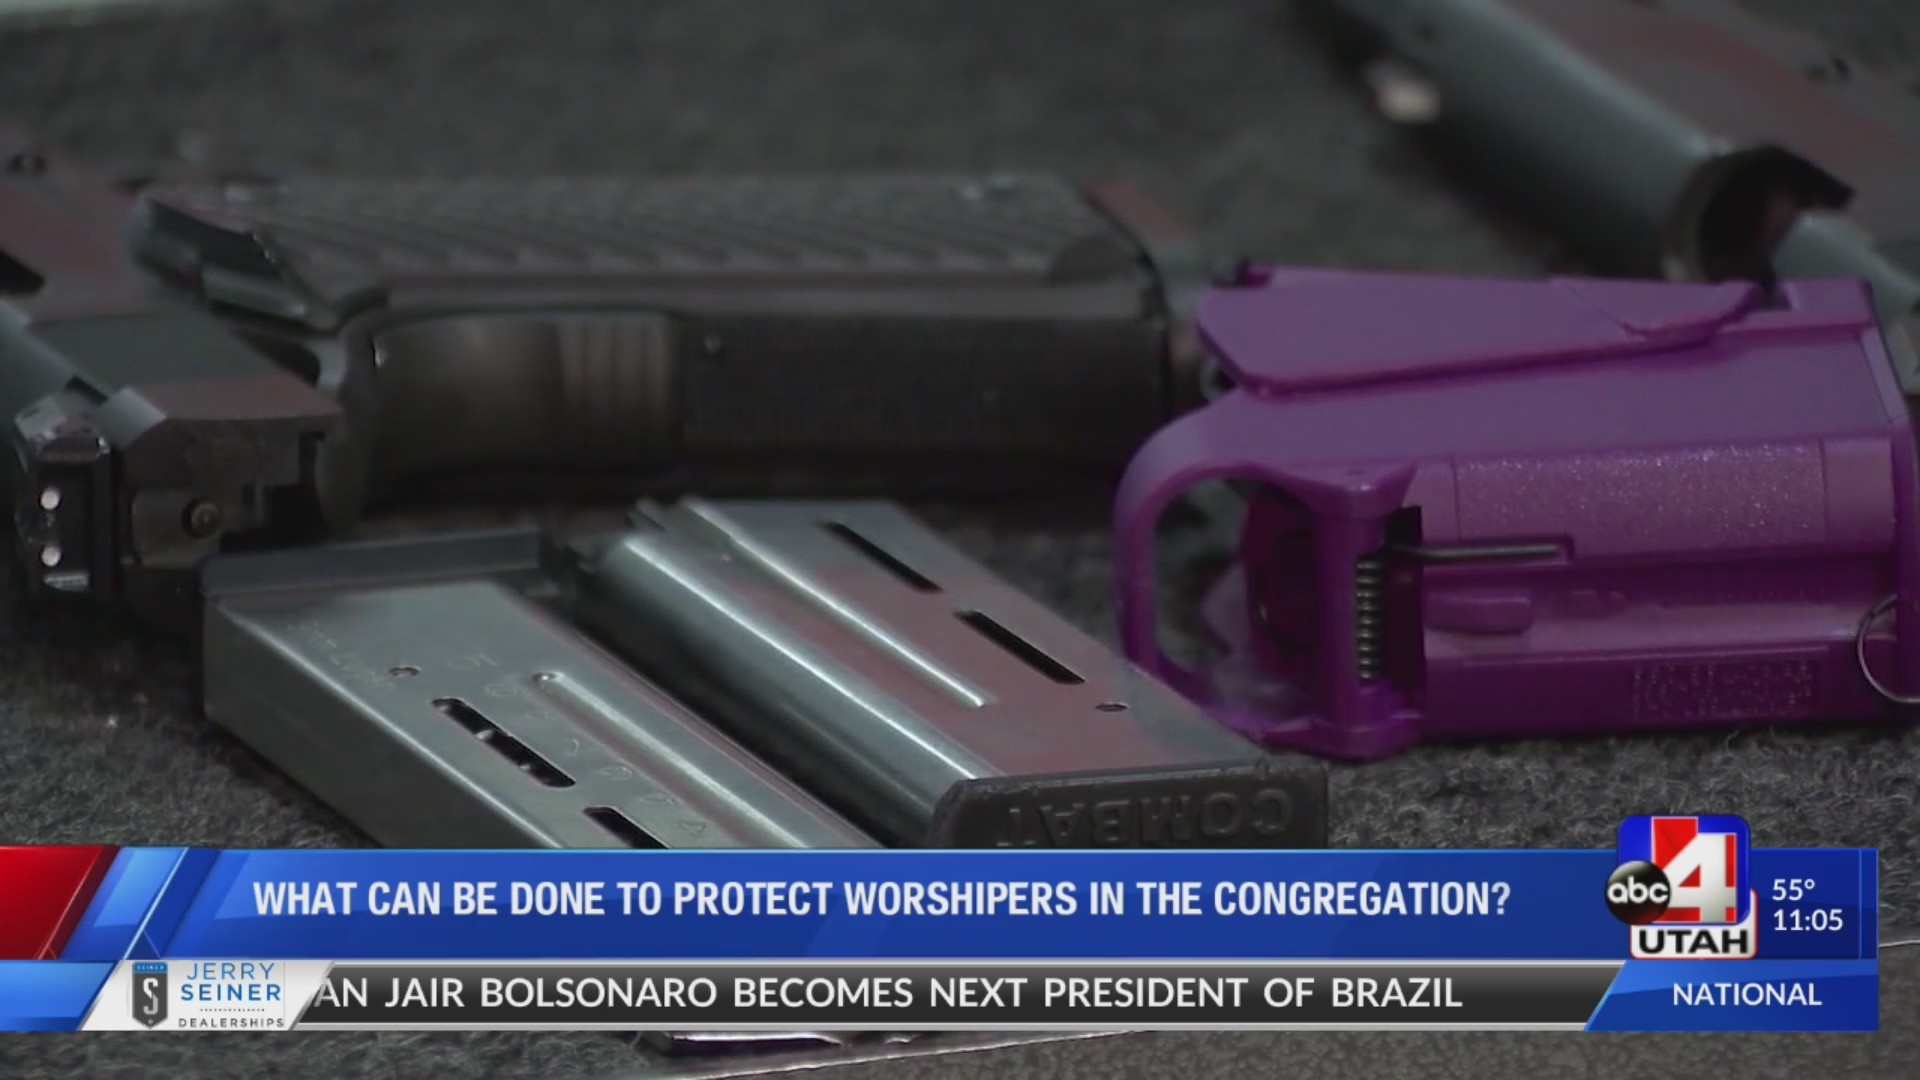 Should guns be allowed in worship centers to protect its congregation?